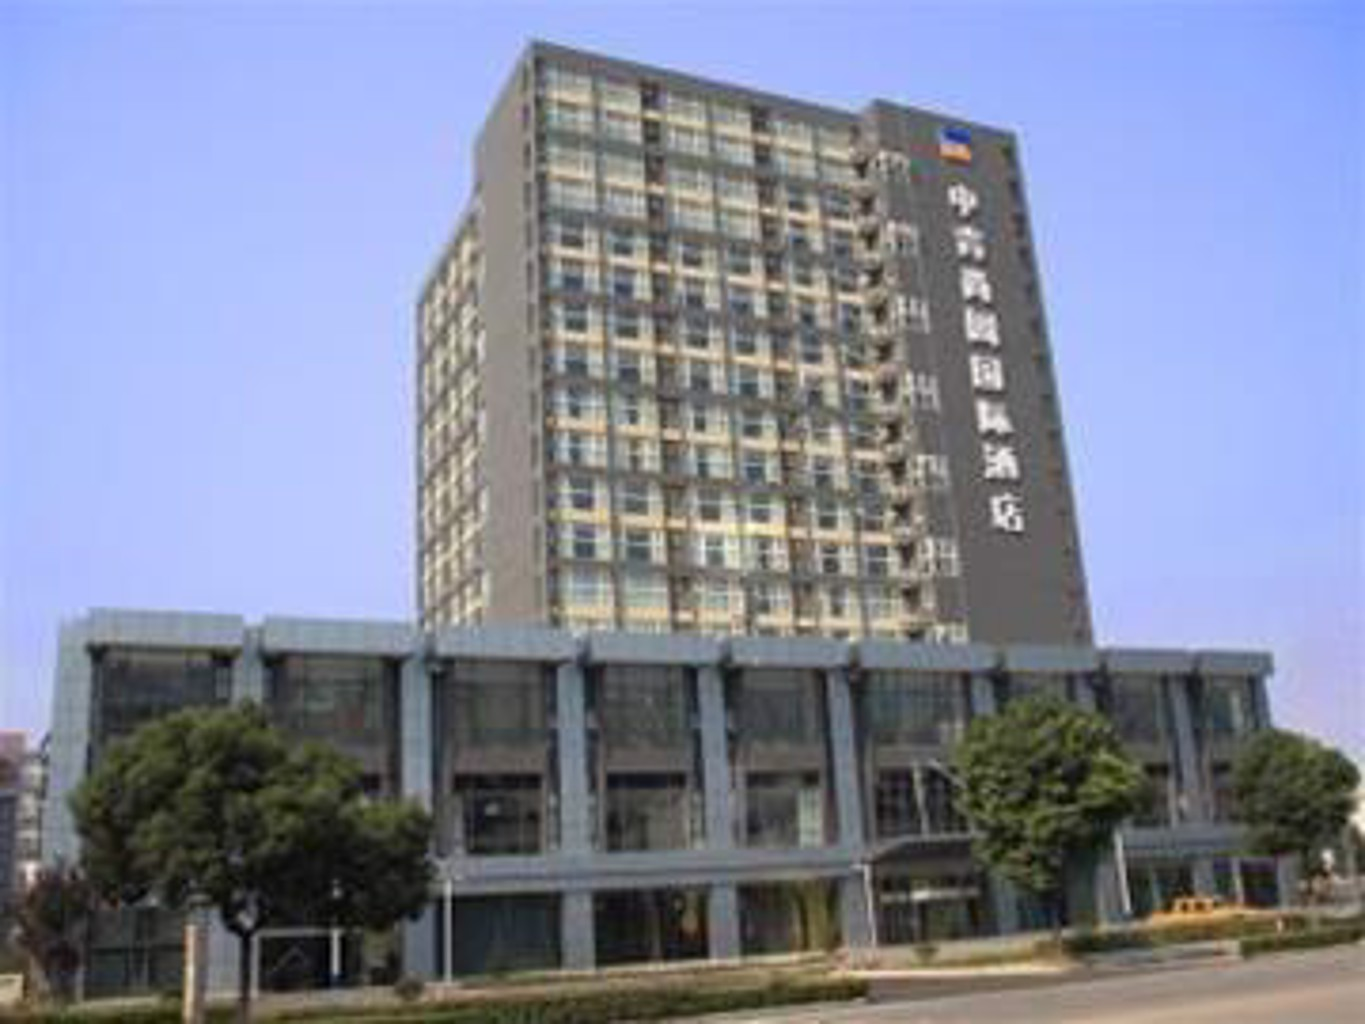 Inlodge Hotel Suzhou With All Duplex Suites